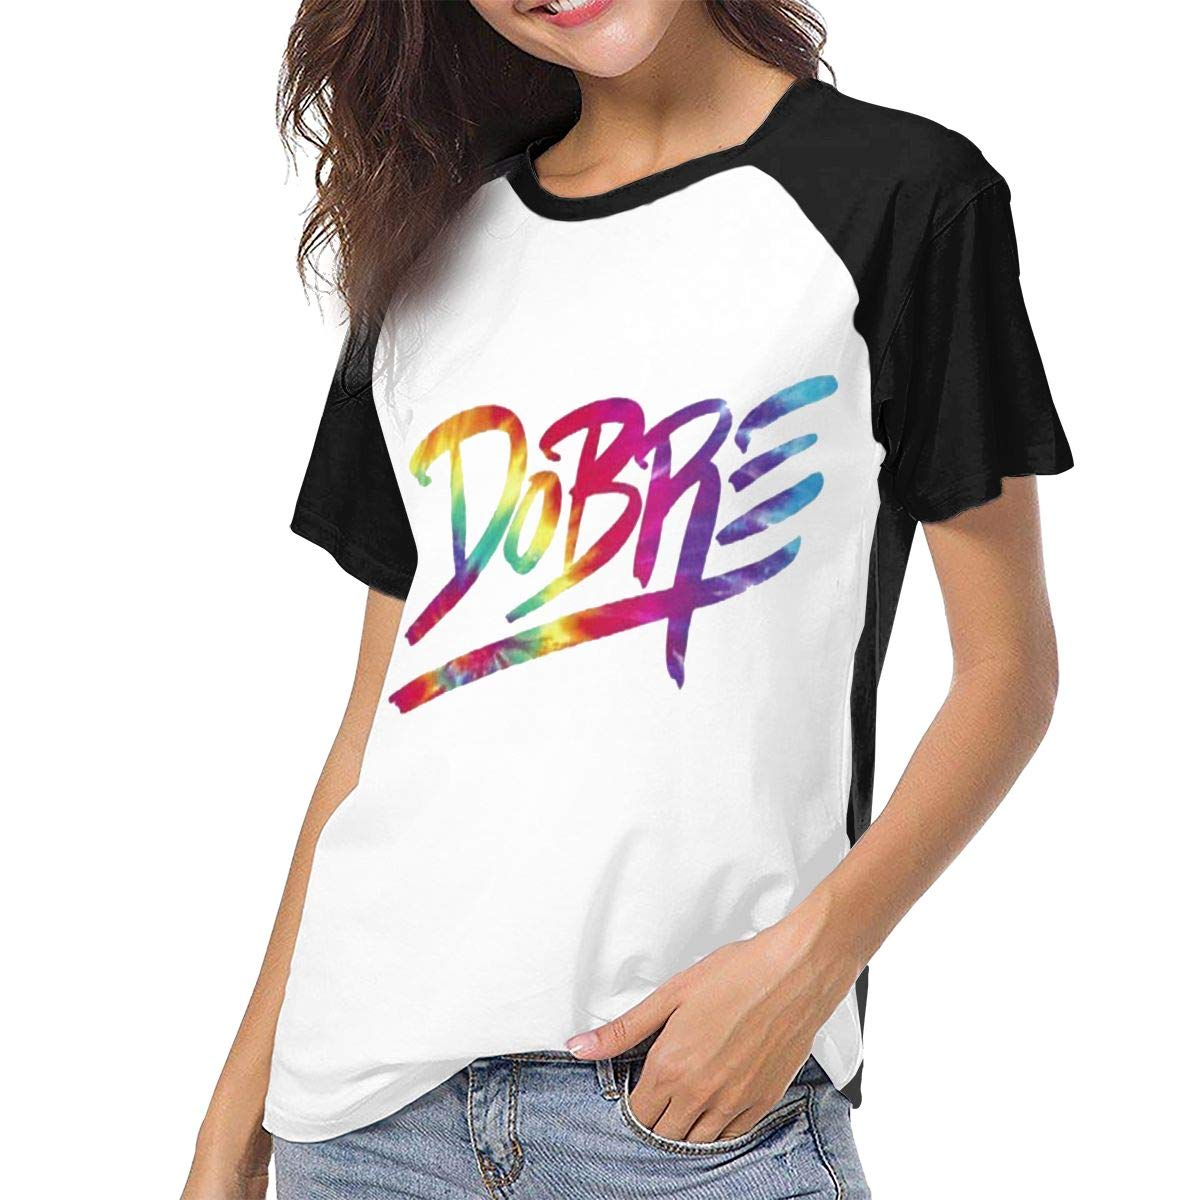 Women's T Shirt Dobre Brothers Tee Shirts Casual Cotton T-Shirt Short-Sleeve Round Neck Tshirt for Women Youth Girls Black S by BKashy